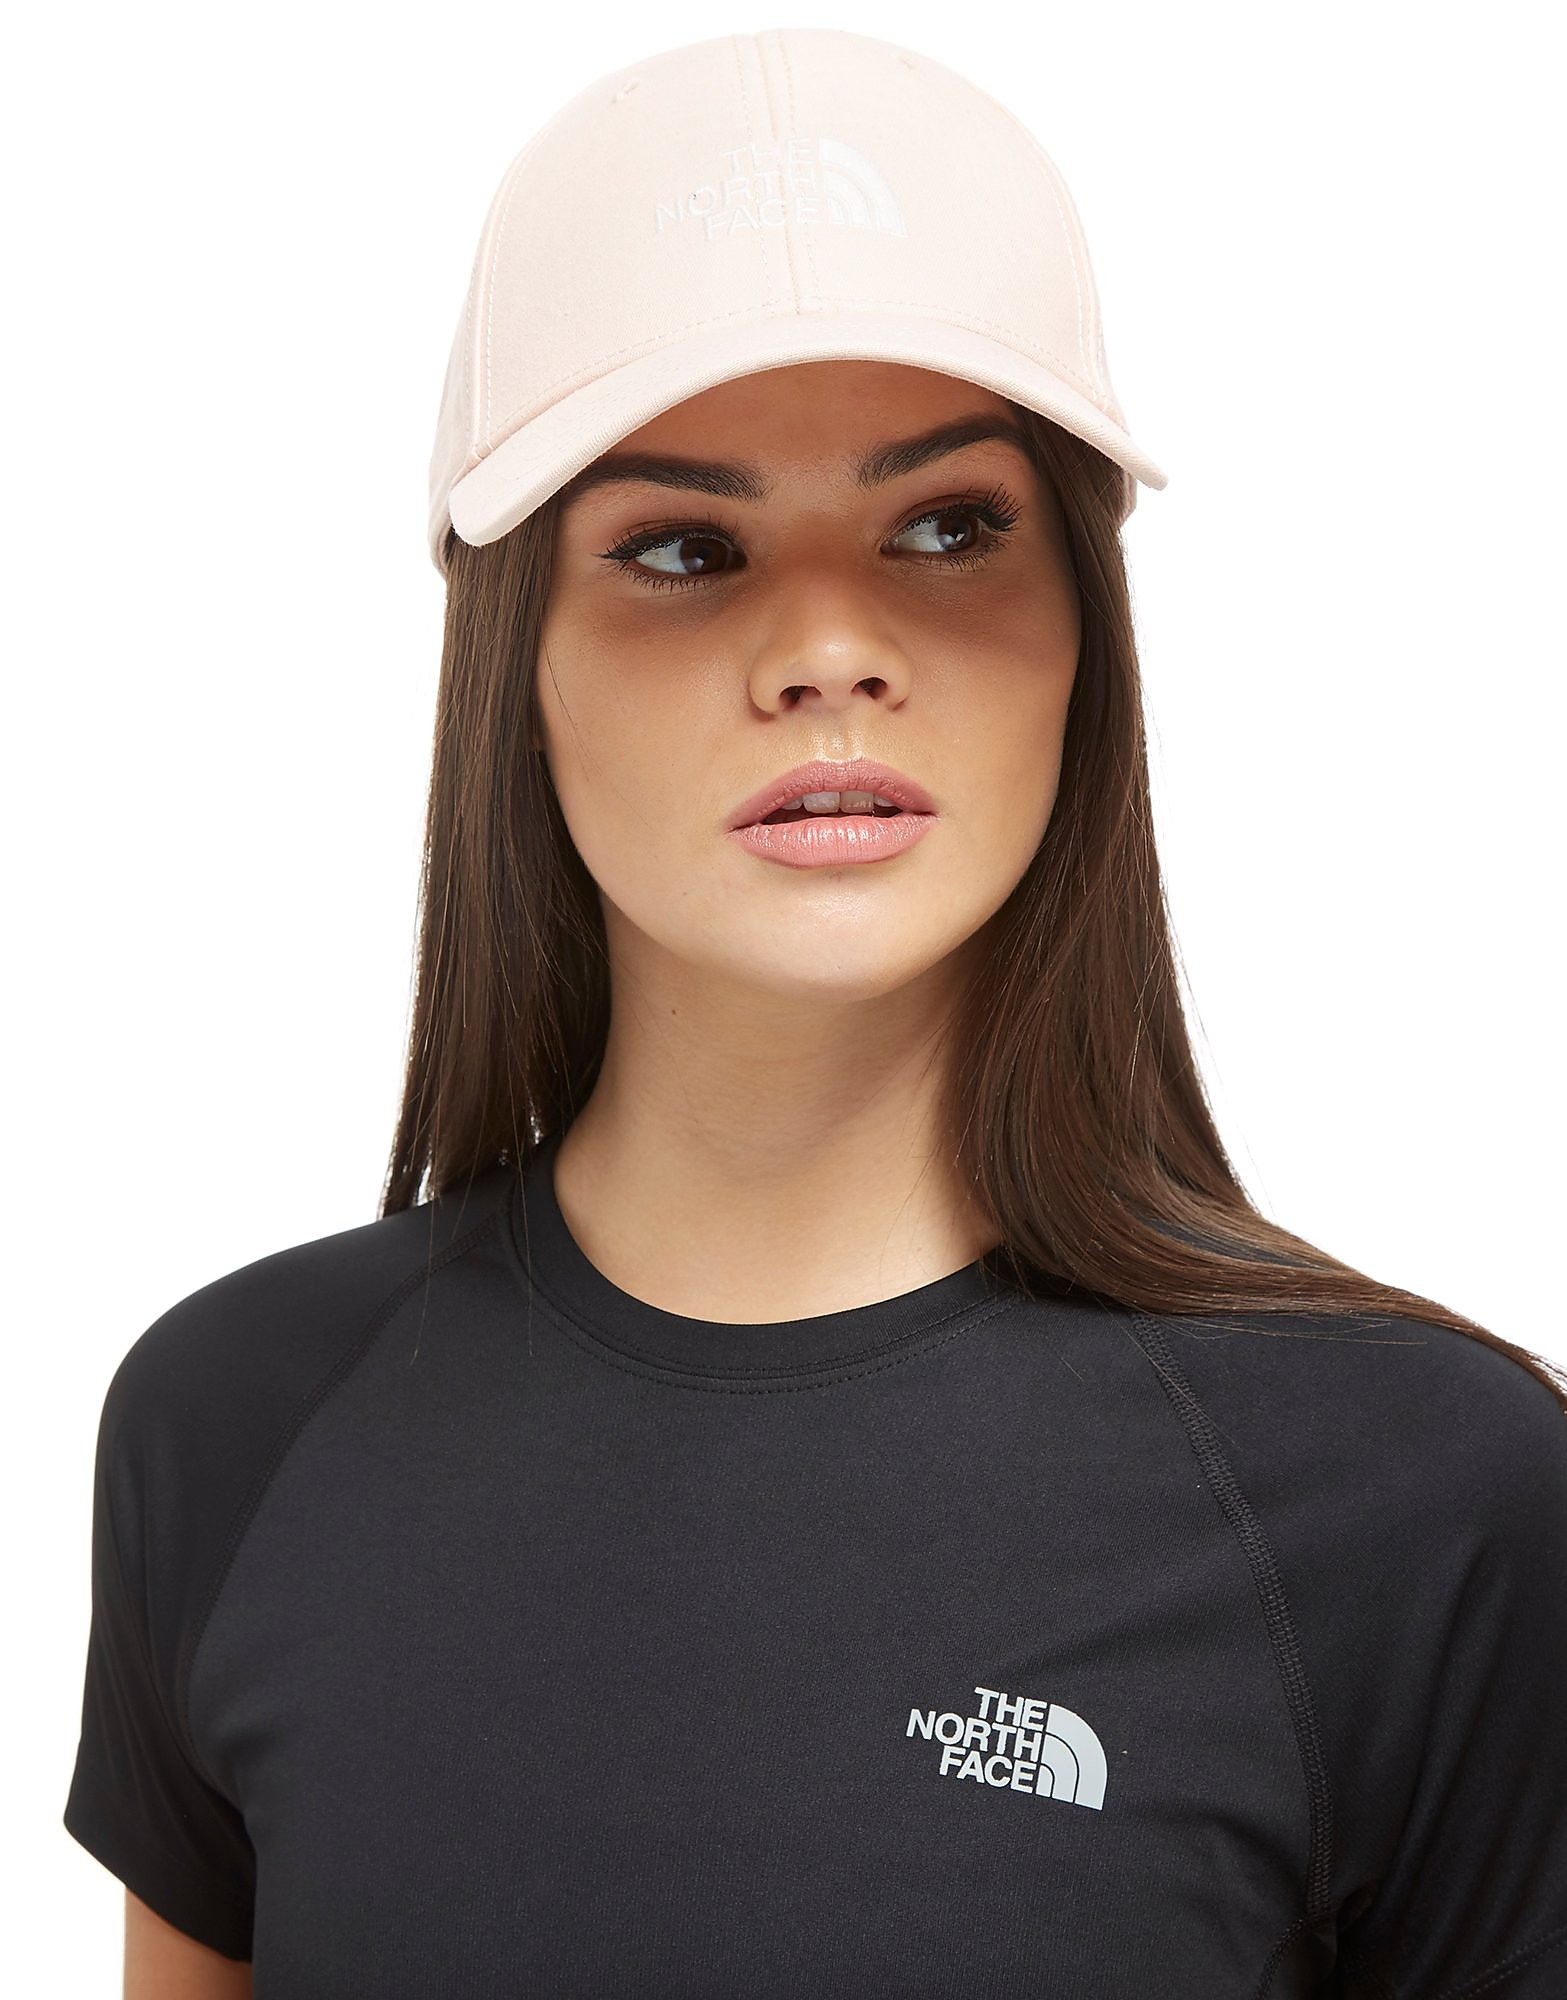 The North Face Casquette 66 Classic Homme